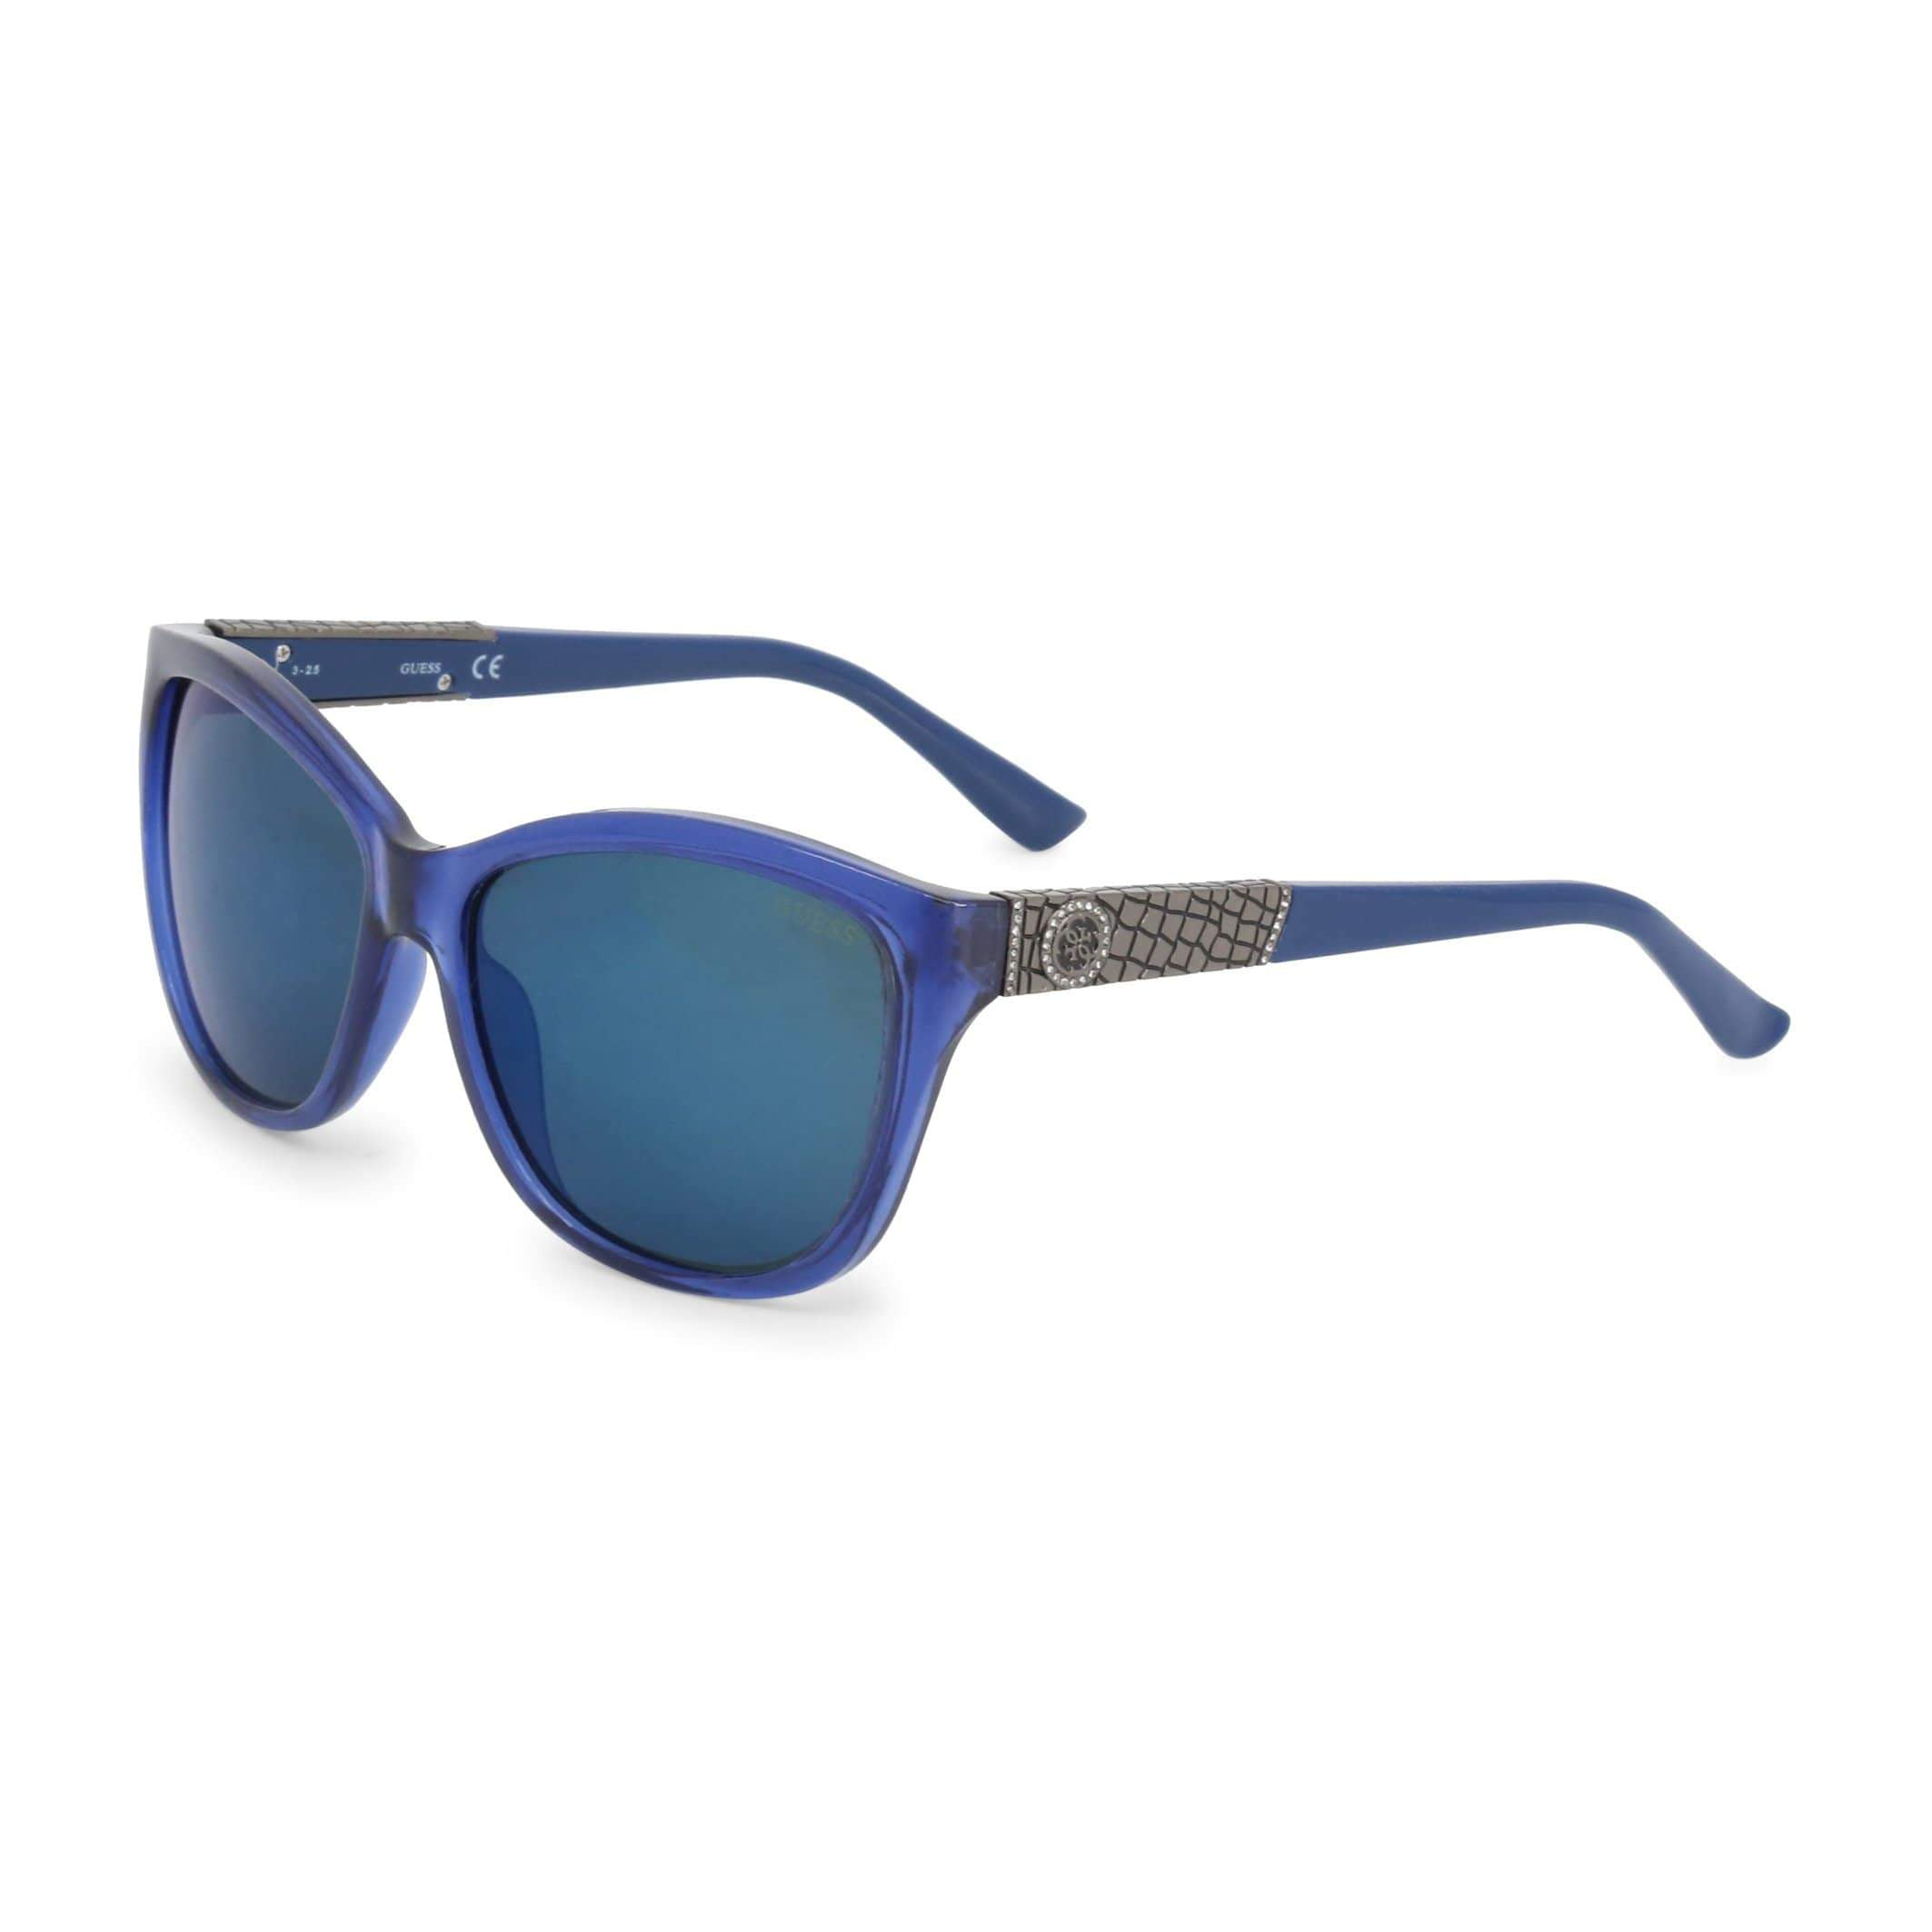 Guess Accessories Sunglasses blue / NOSIZE Guess - GU7387